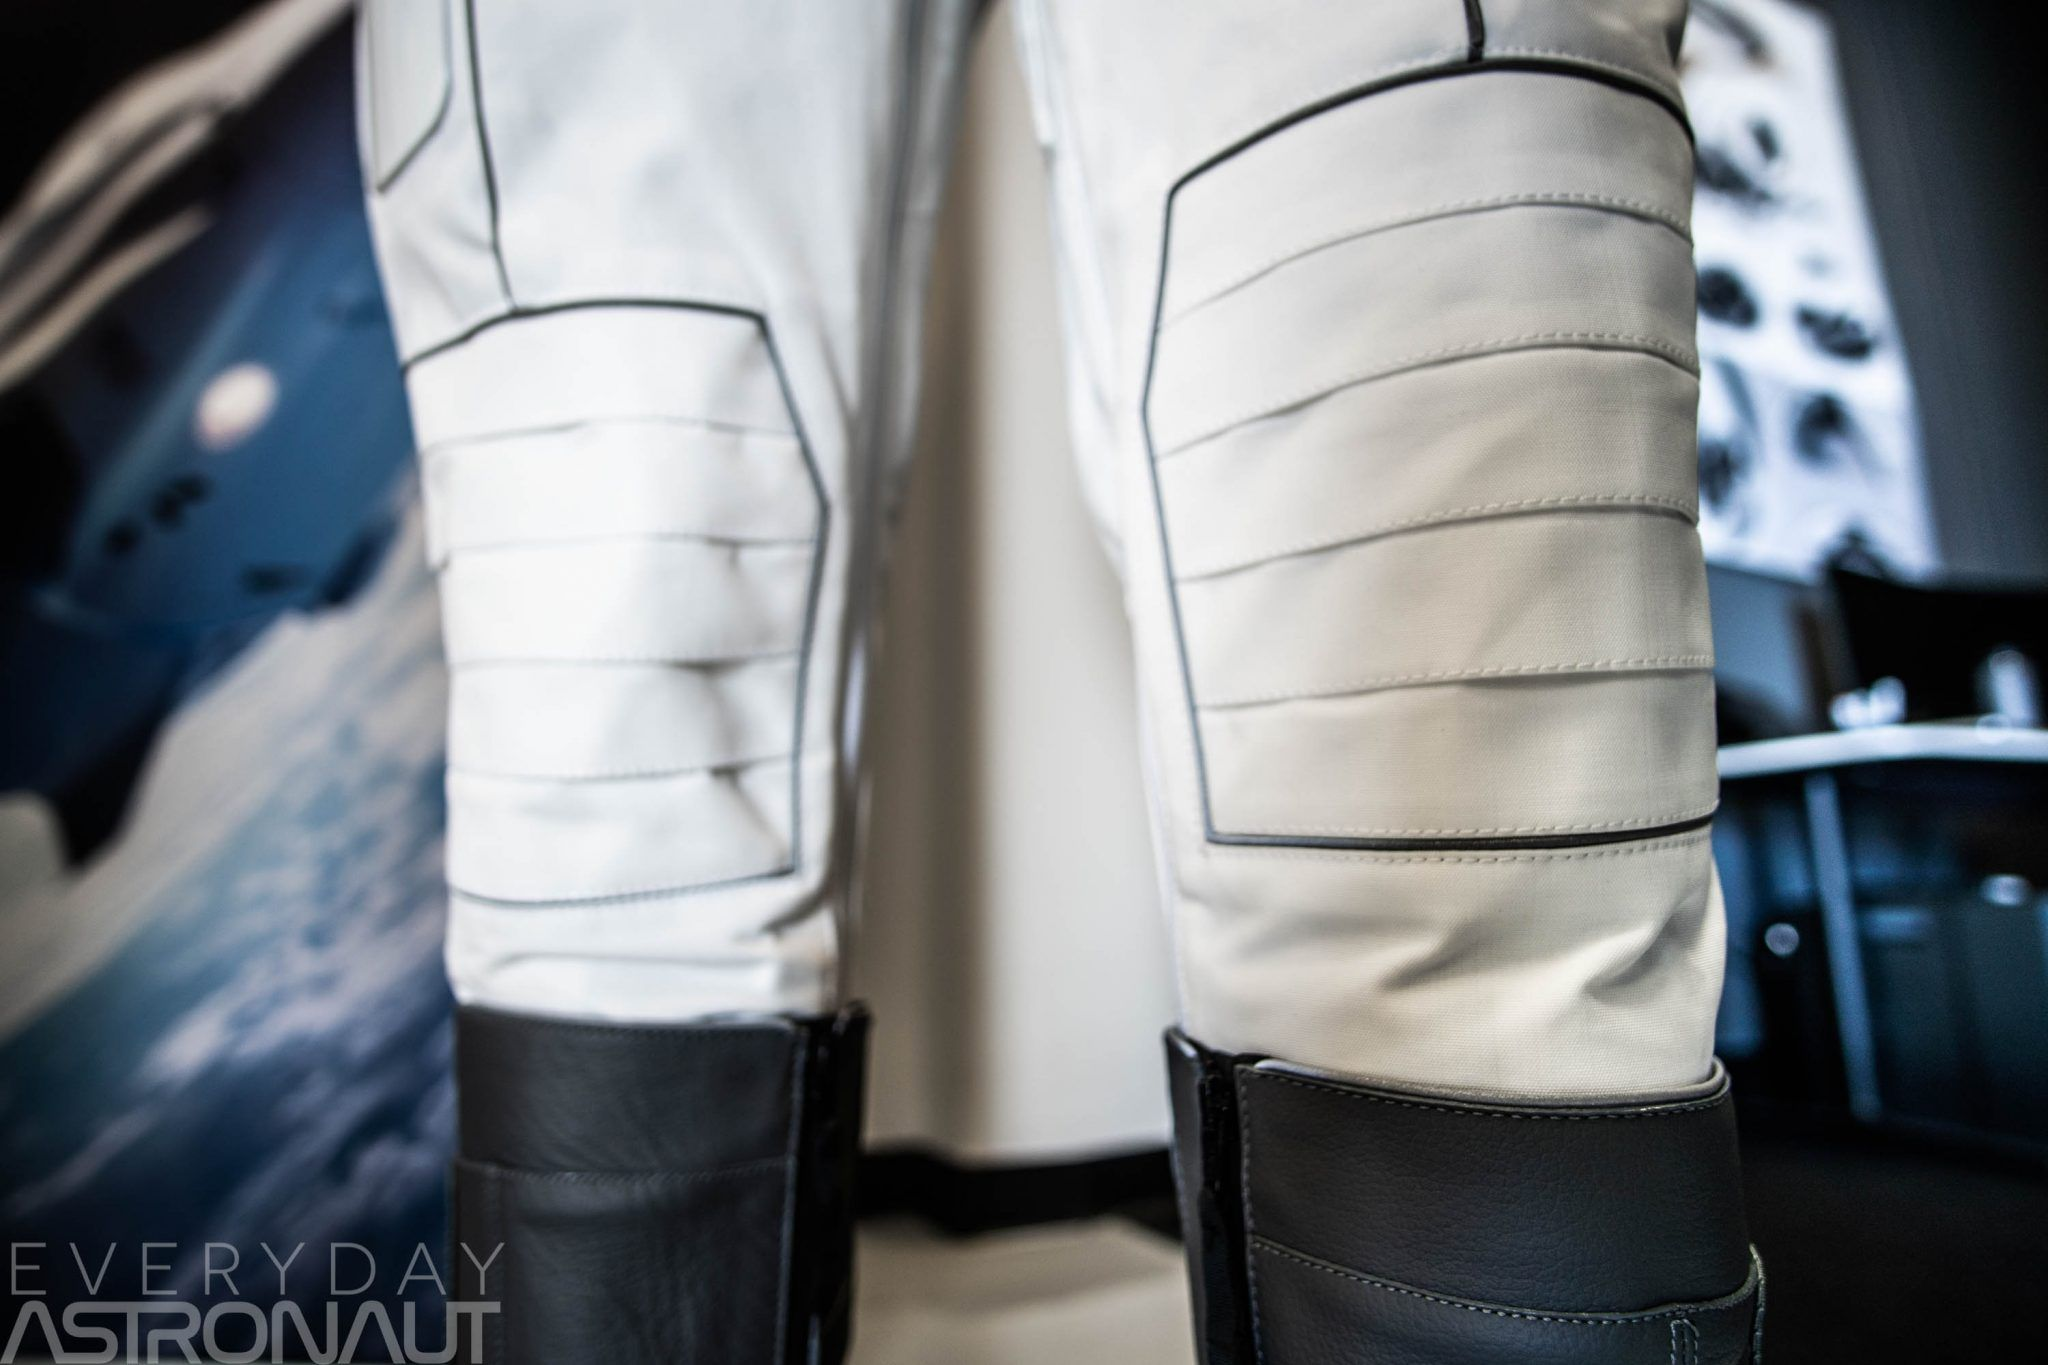 Up Close And Personal With Spacex S Space Suit